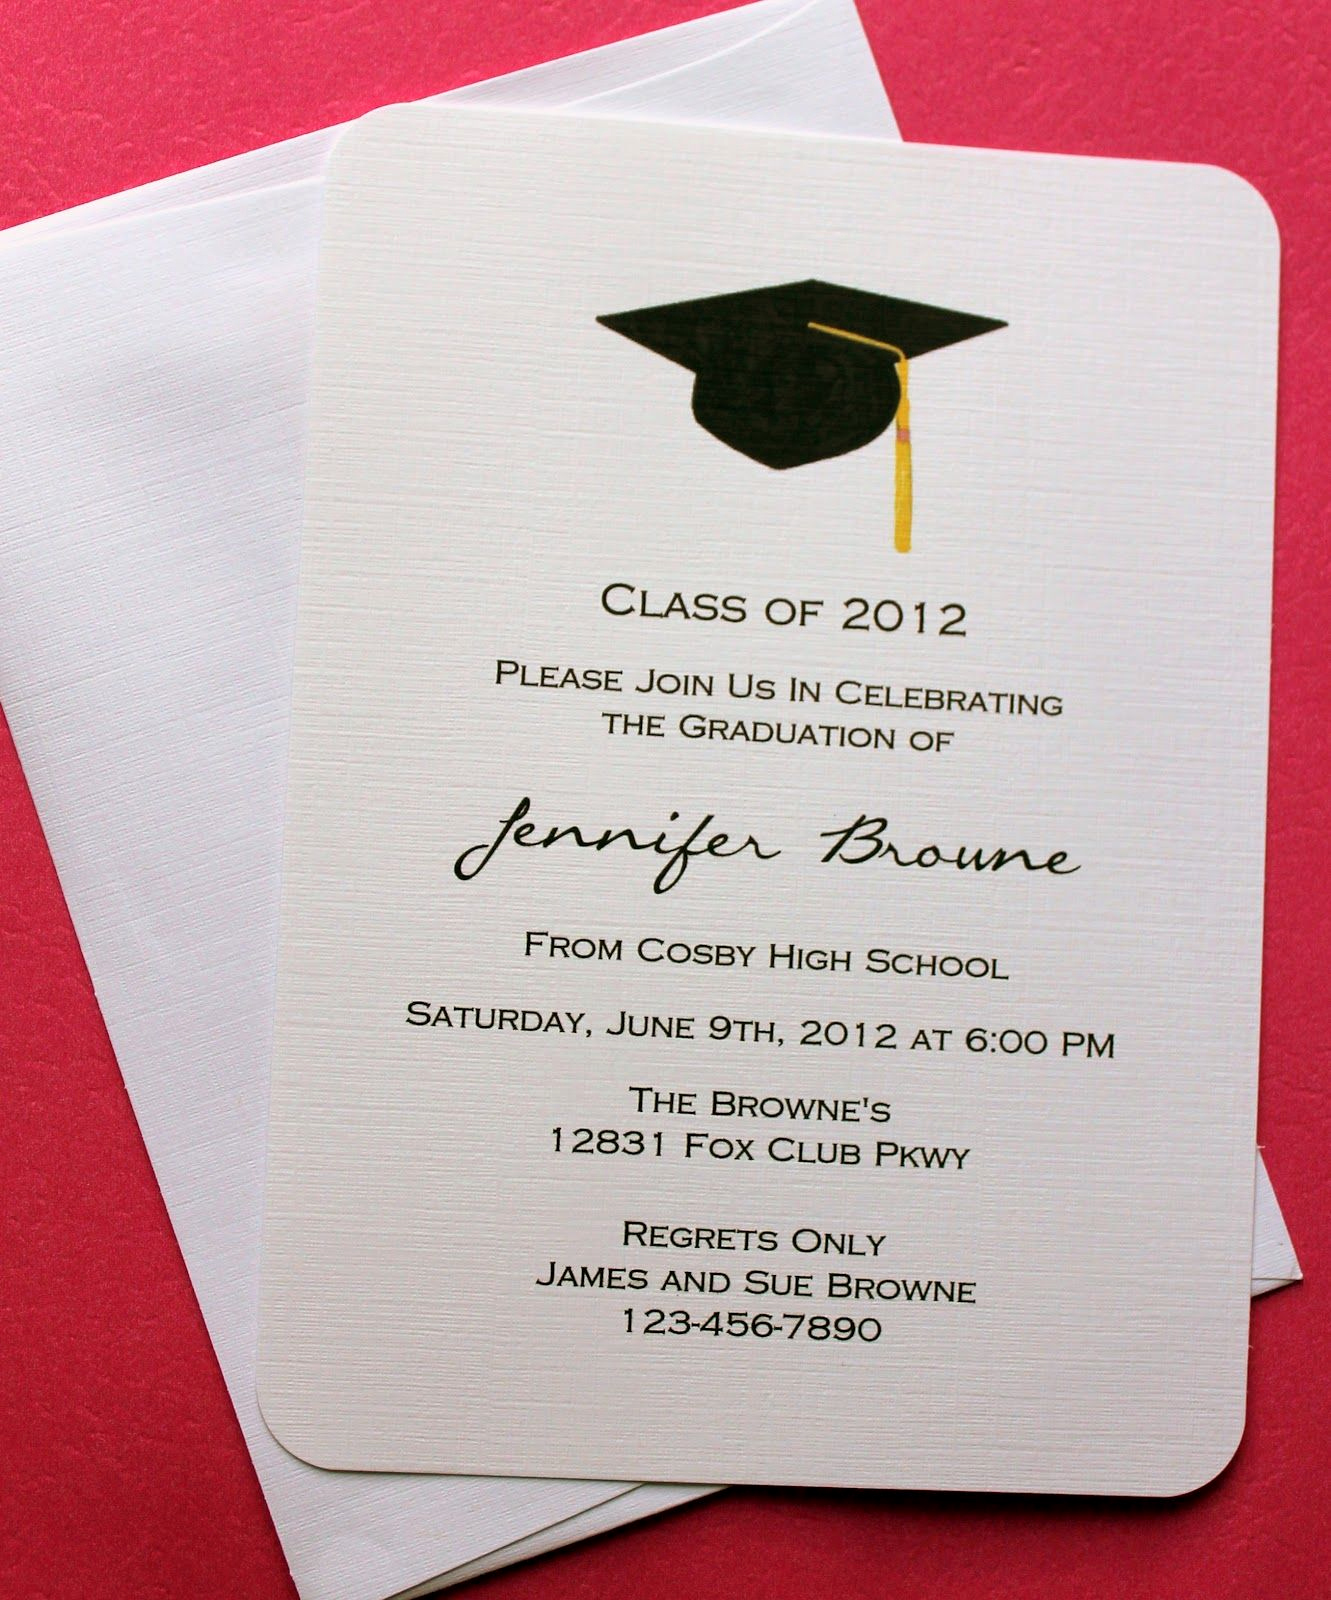 Graduation Invitation Card Template Best Of Collection Of Thousands Of Free Graduation Invitation